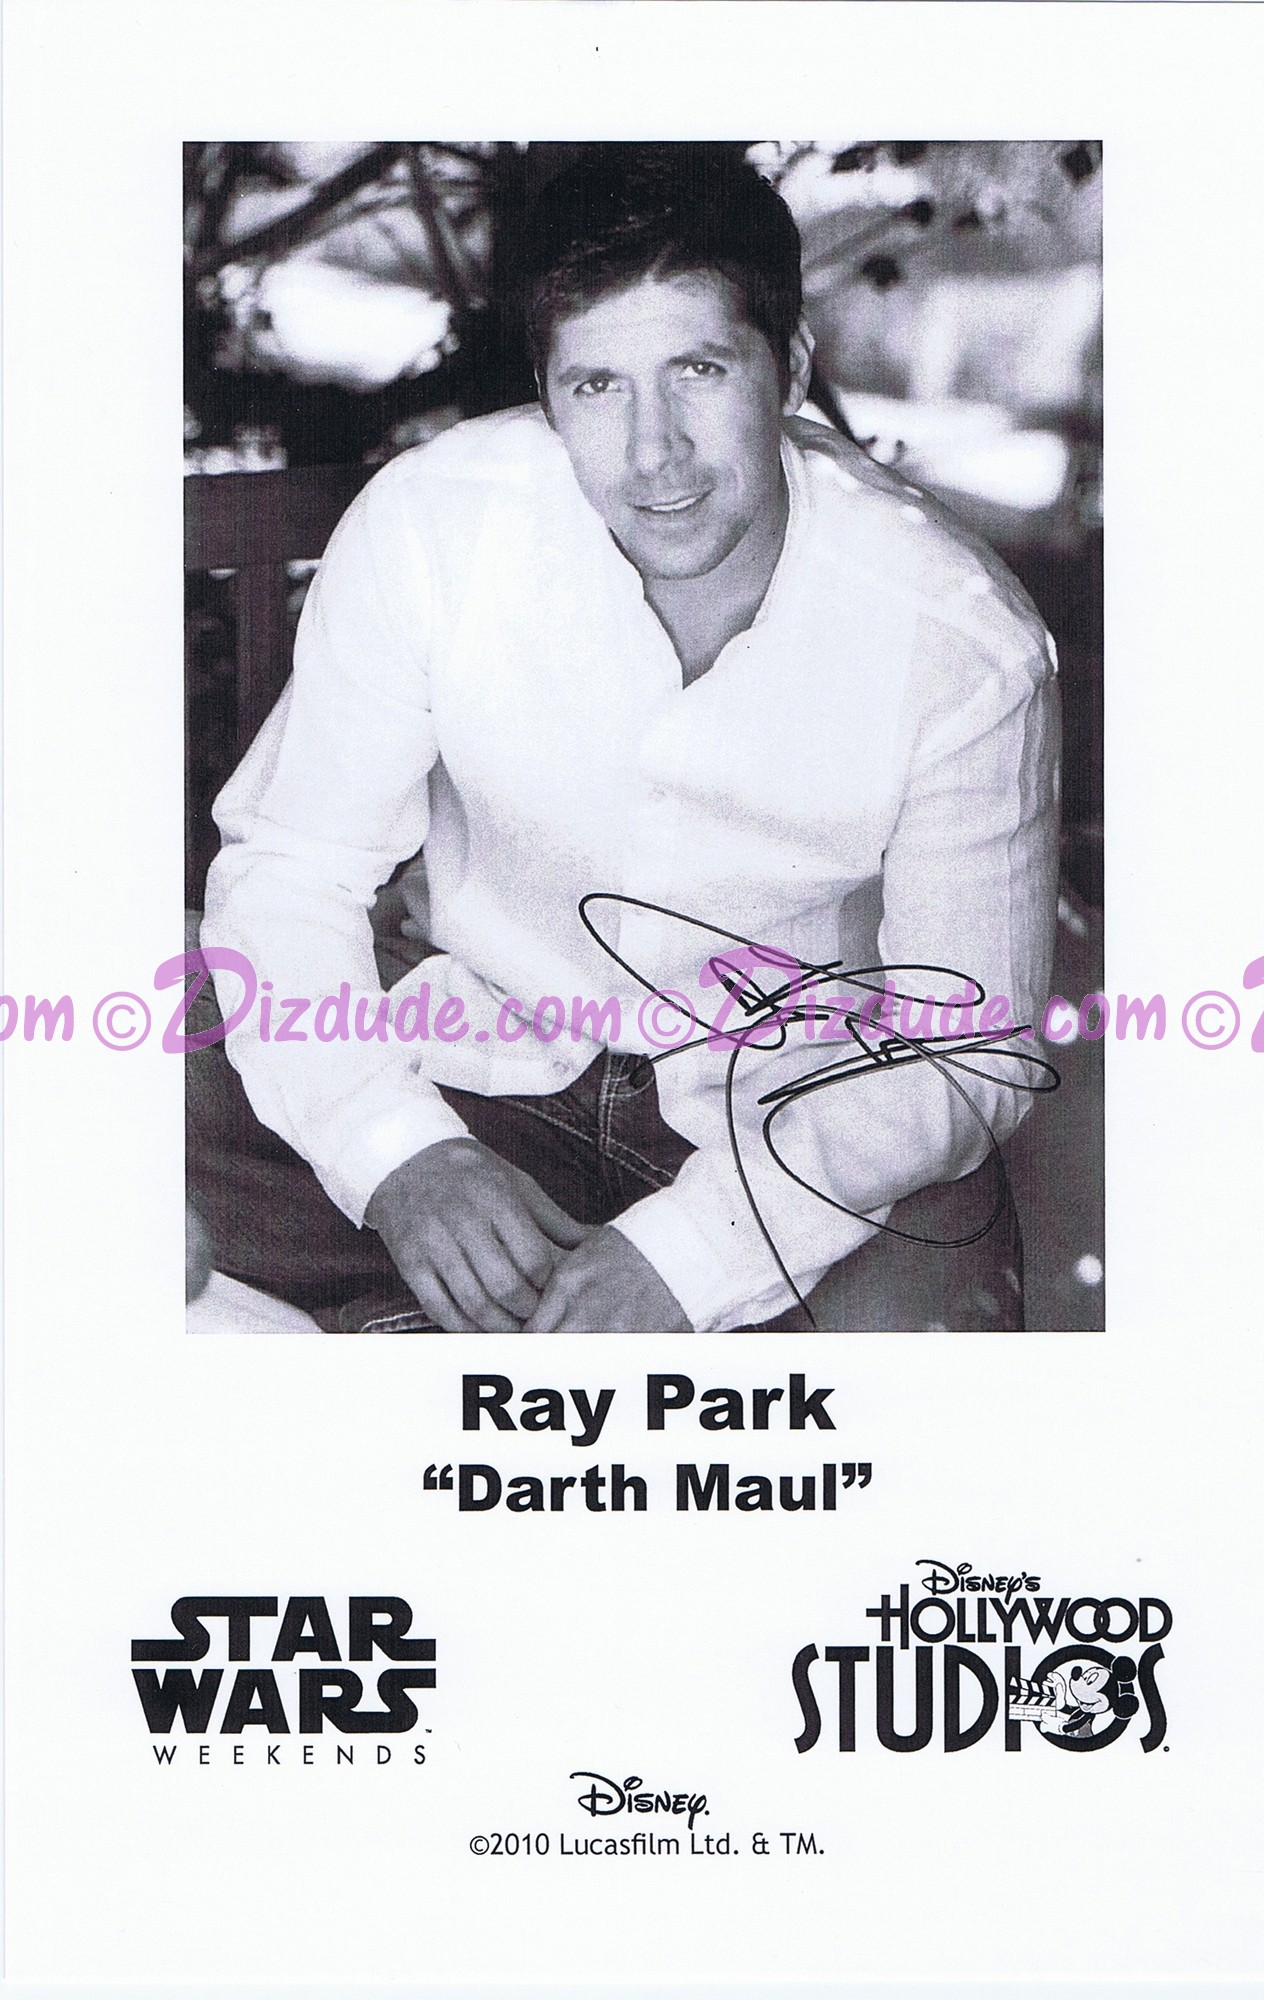 Ray Park who played Darth Maul Presigned Official Star Wars Weekends 2010 Celebrity Collector Photo